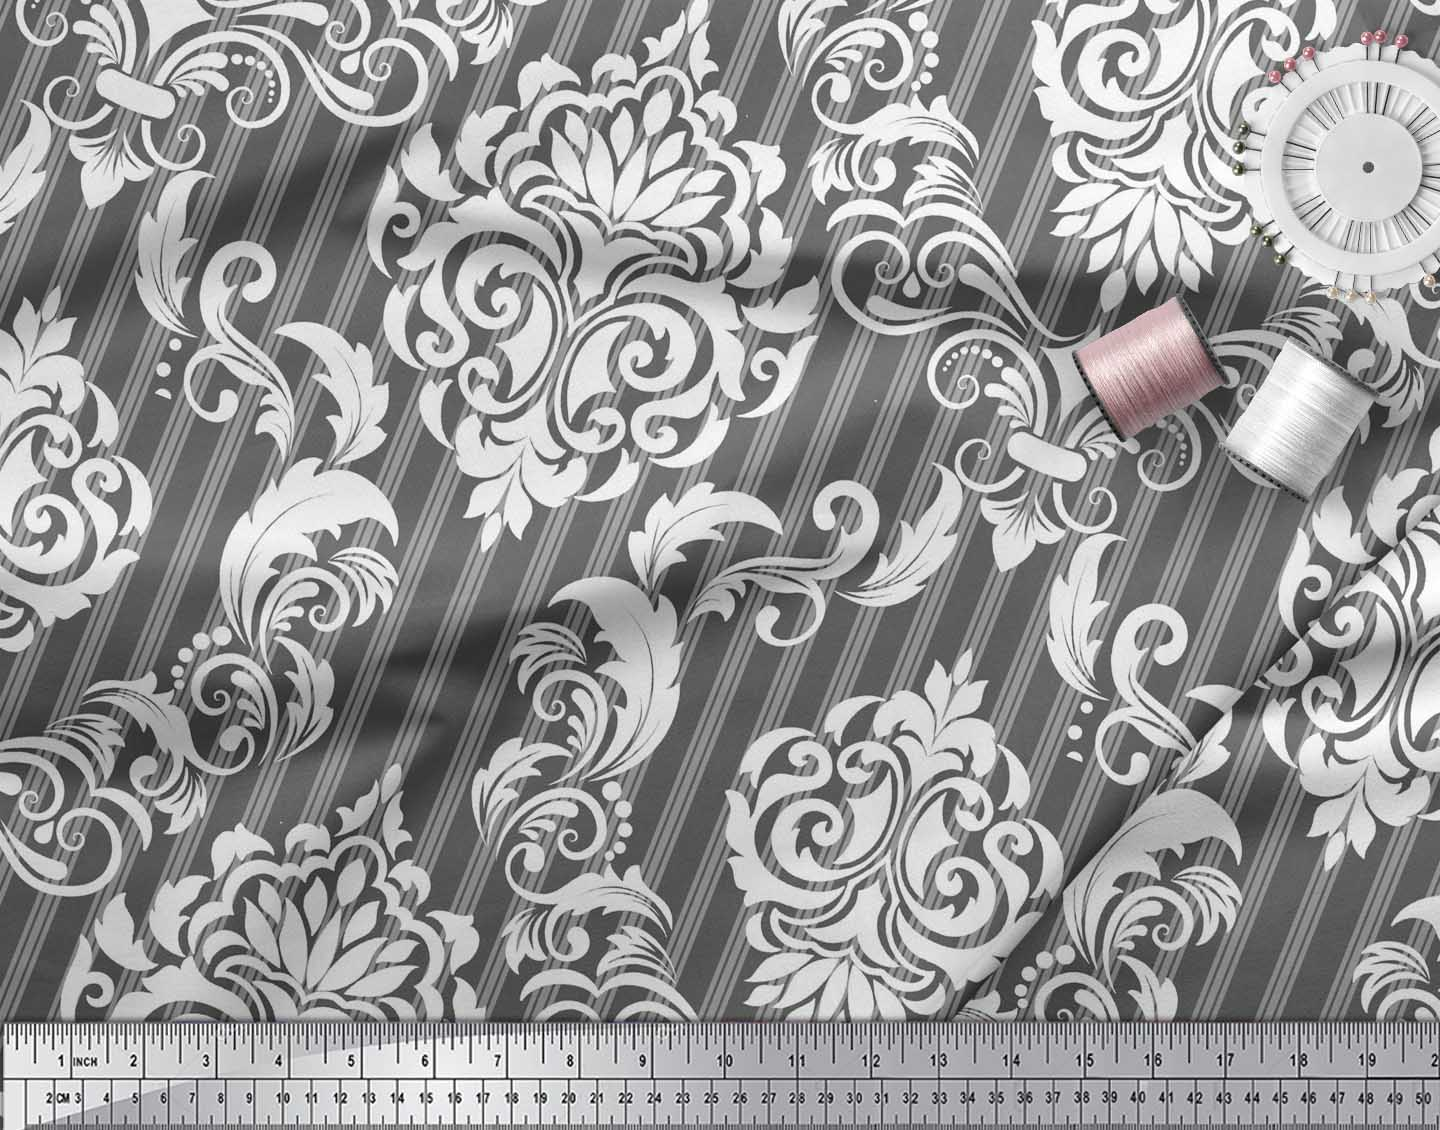 Soimoi-Gray-Cotton-Poplin-Fabric-Stripe-amp-Vector-Design-Damask-Print-Rgc thumbnail 3